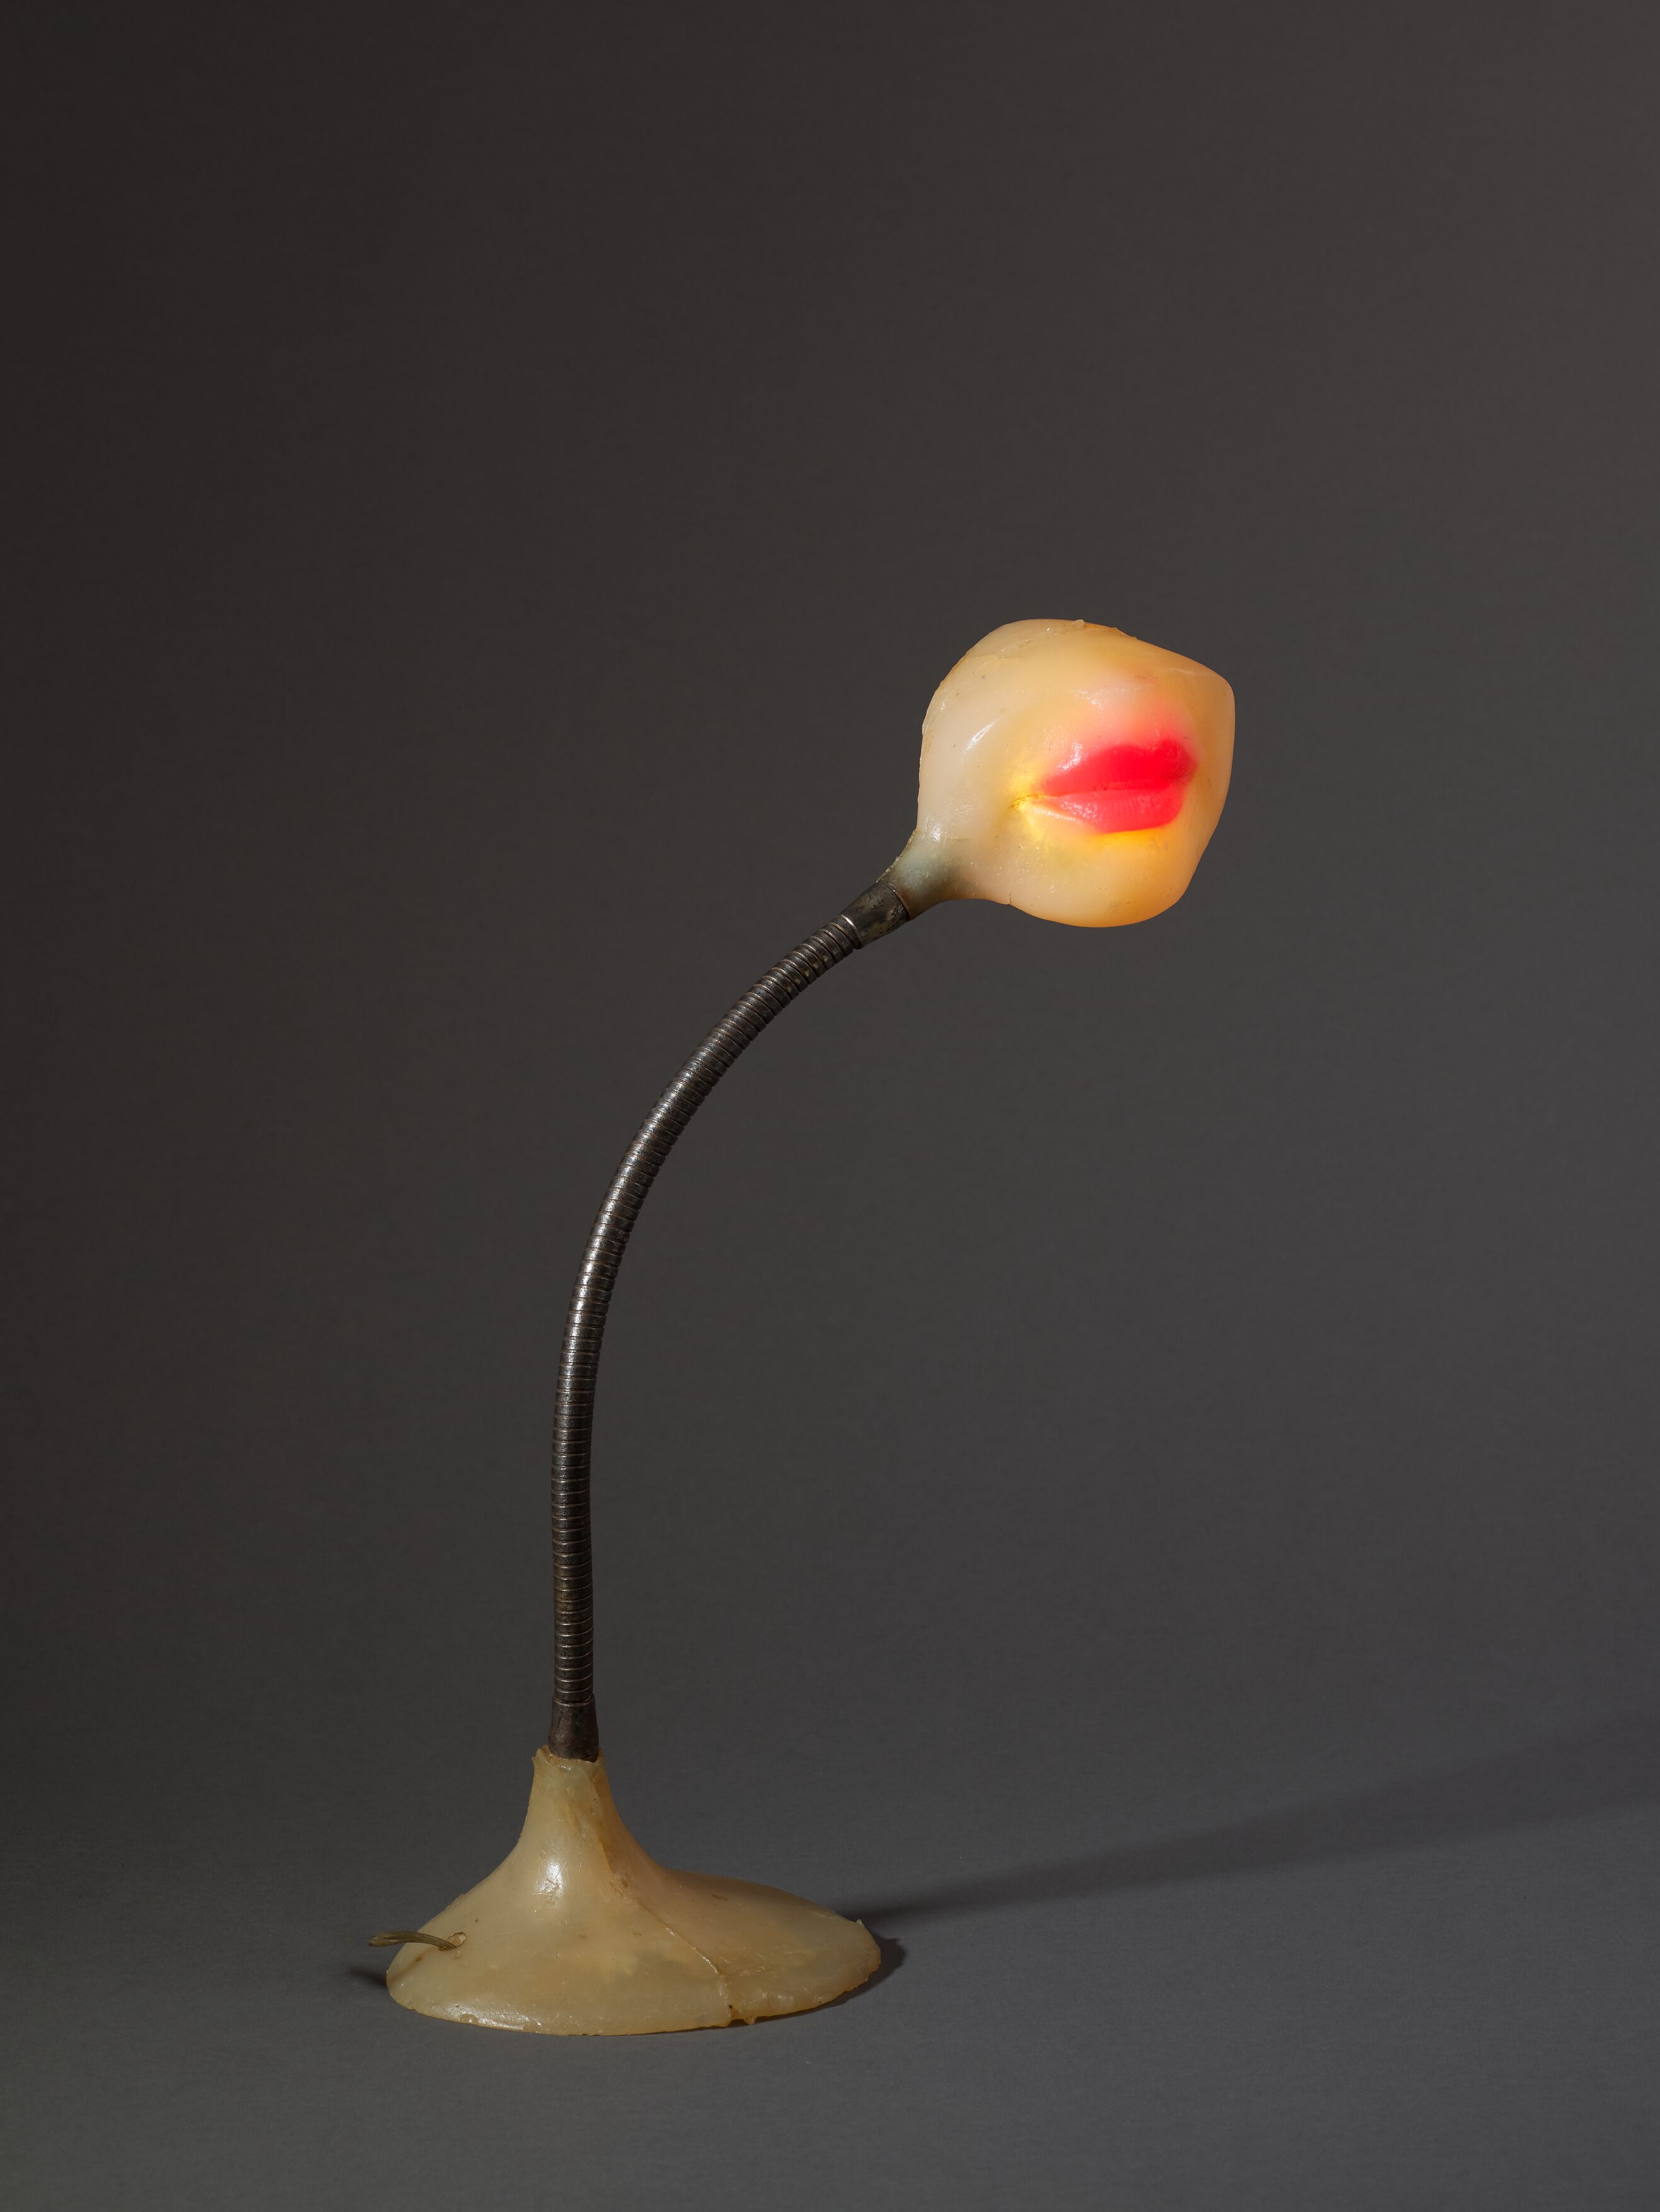 Lampe-bouche (Illuminated Lips) 1966. Colored polyester resin, light bulb, electrical wiring and metal. 43 x 15 x 11 cm / 16 7/8 x 5 7/8 x 4 3/8 in. Photo: Thomas Barratt © ADAGP, Paris. Courtesy the Estate of Alina Szapocznikow / Piotr Stanislawski / Galerie Loevenbruck, Paris / and Hauser & Wirth